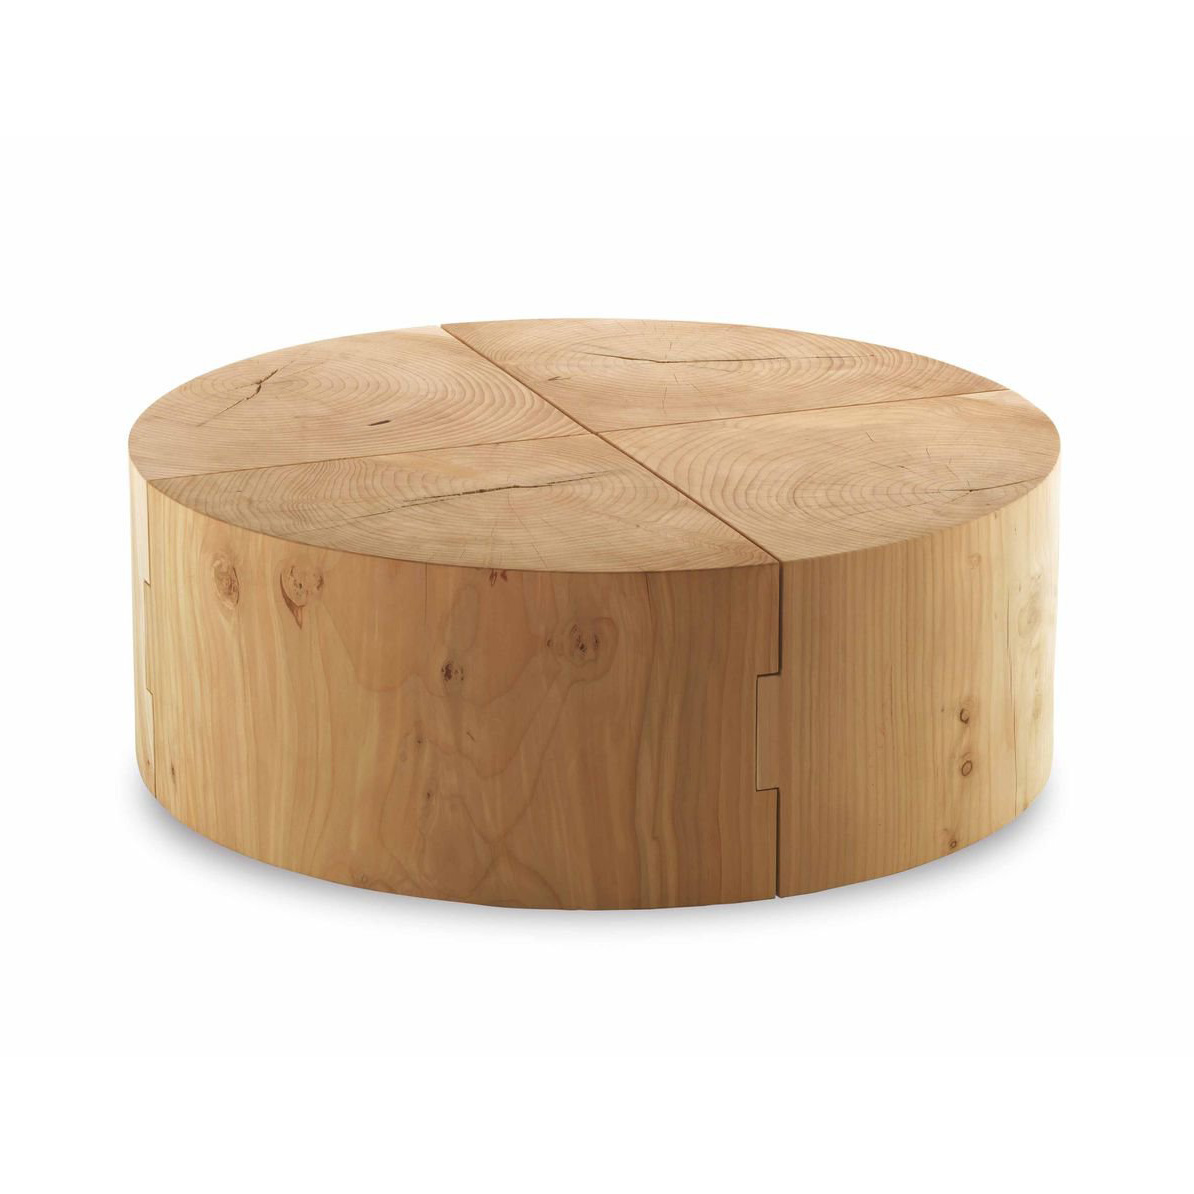 Eco Block end table from Riva 1920